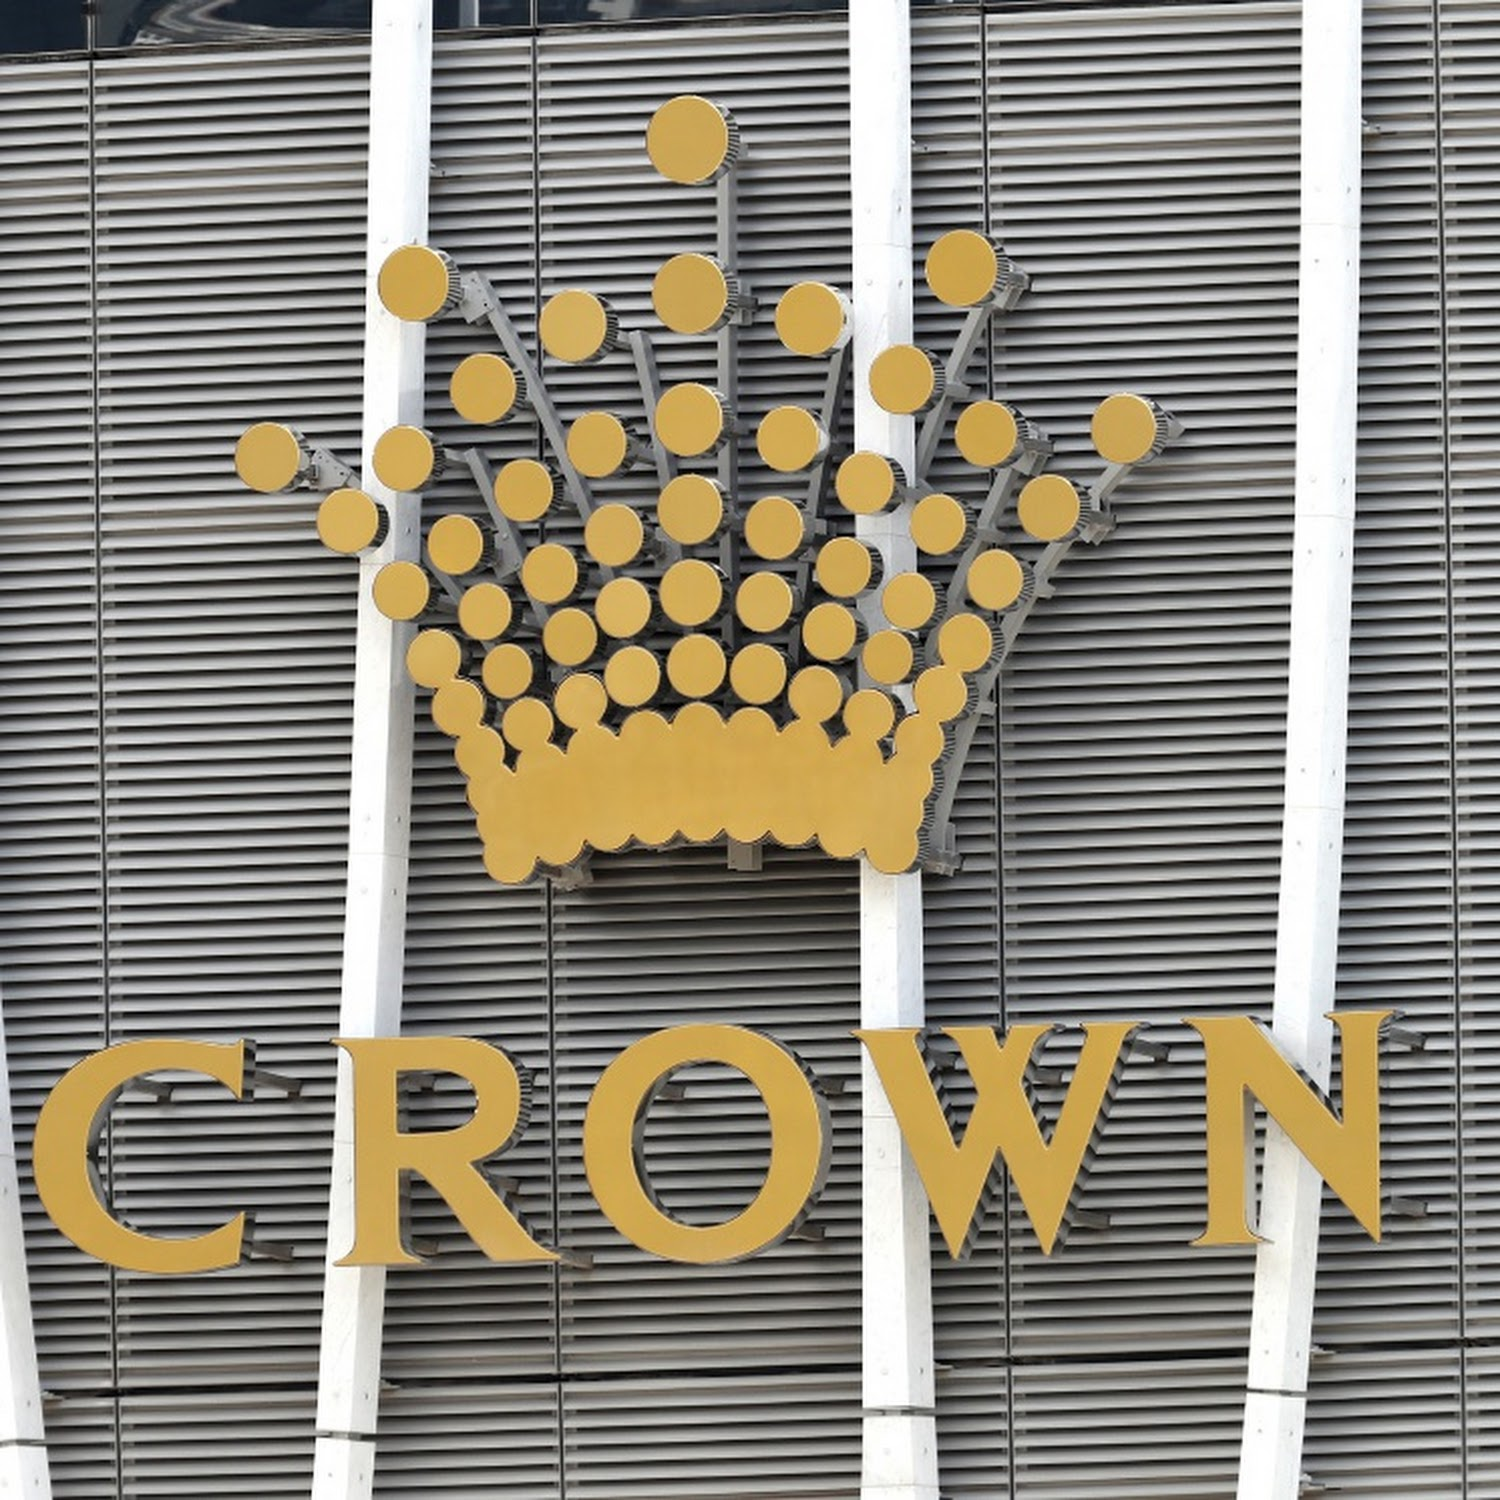 Ceo Of Australia S Troubled Crown Quits Over Regulator Pressure